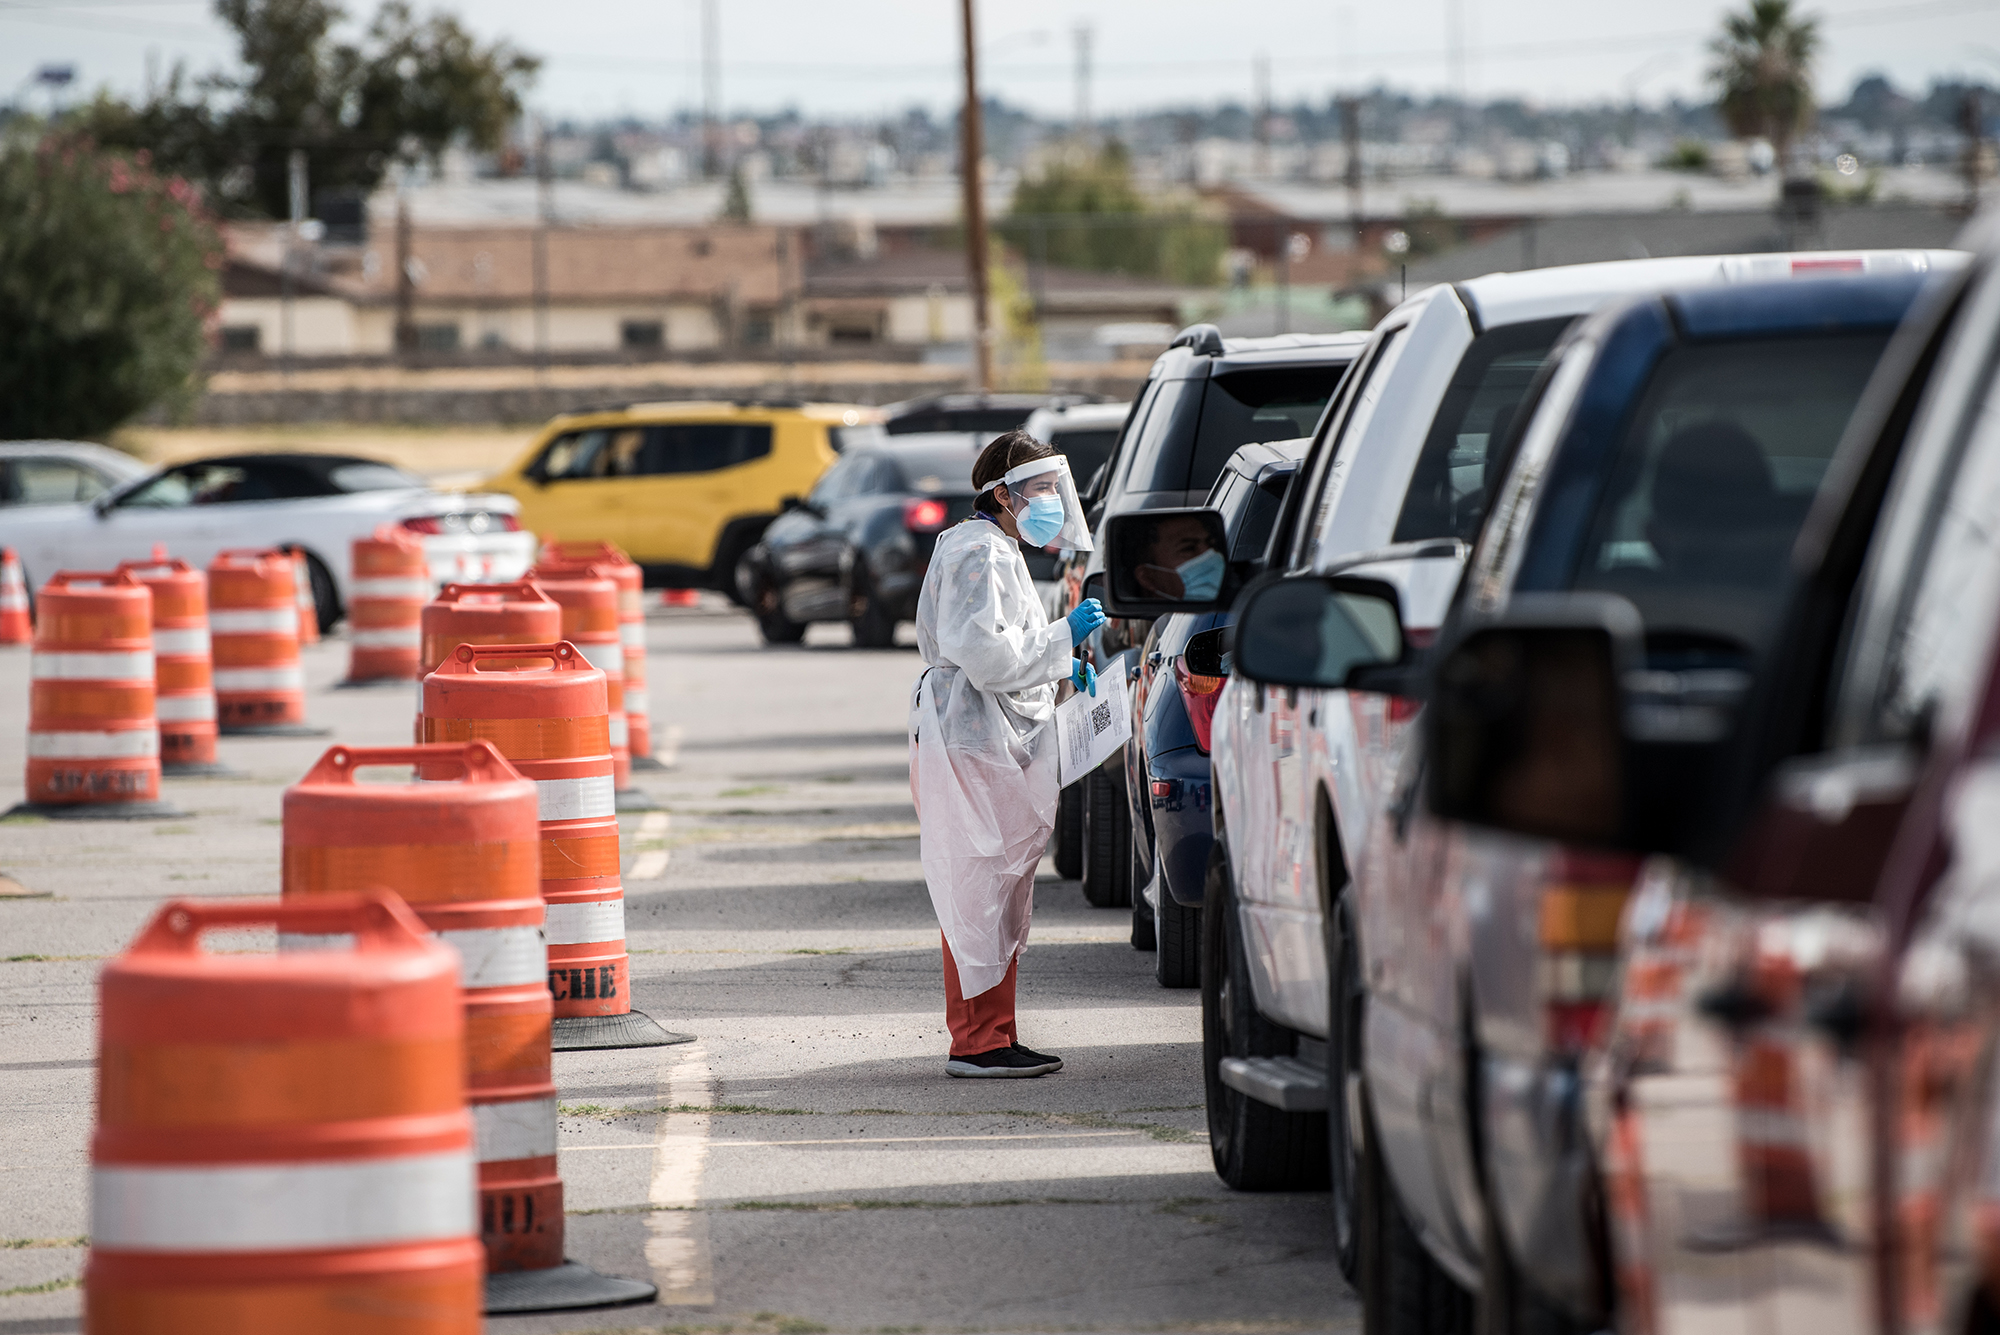 An attendant talks to a person waiting in their car at a coronavirus testing site at Ascarate Park on October 31, in El Paso, Texas.